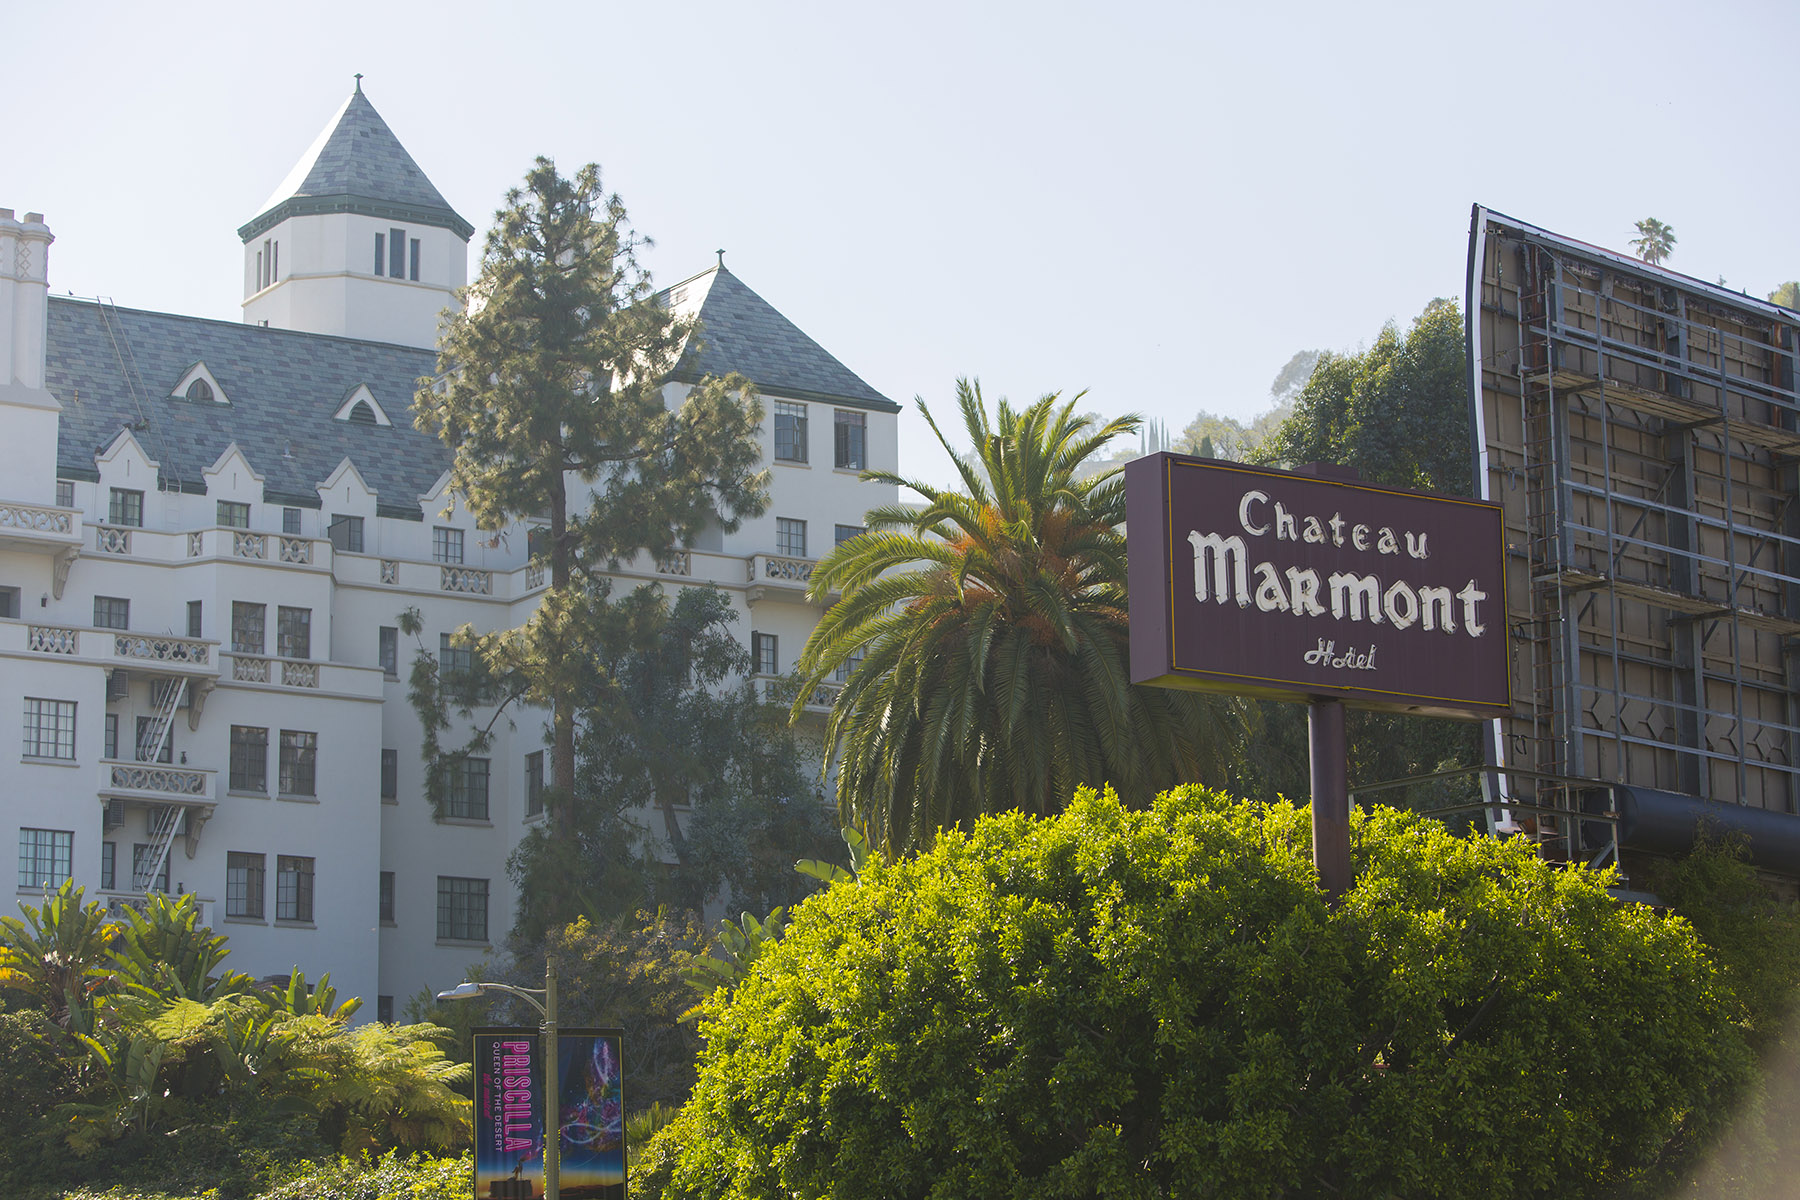 The owner of the Chateau Marmont luxury hotel in West Hollywood, California, is looking to convert it for private residential use, where guests could take ownership stakes. (Getty Images)